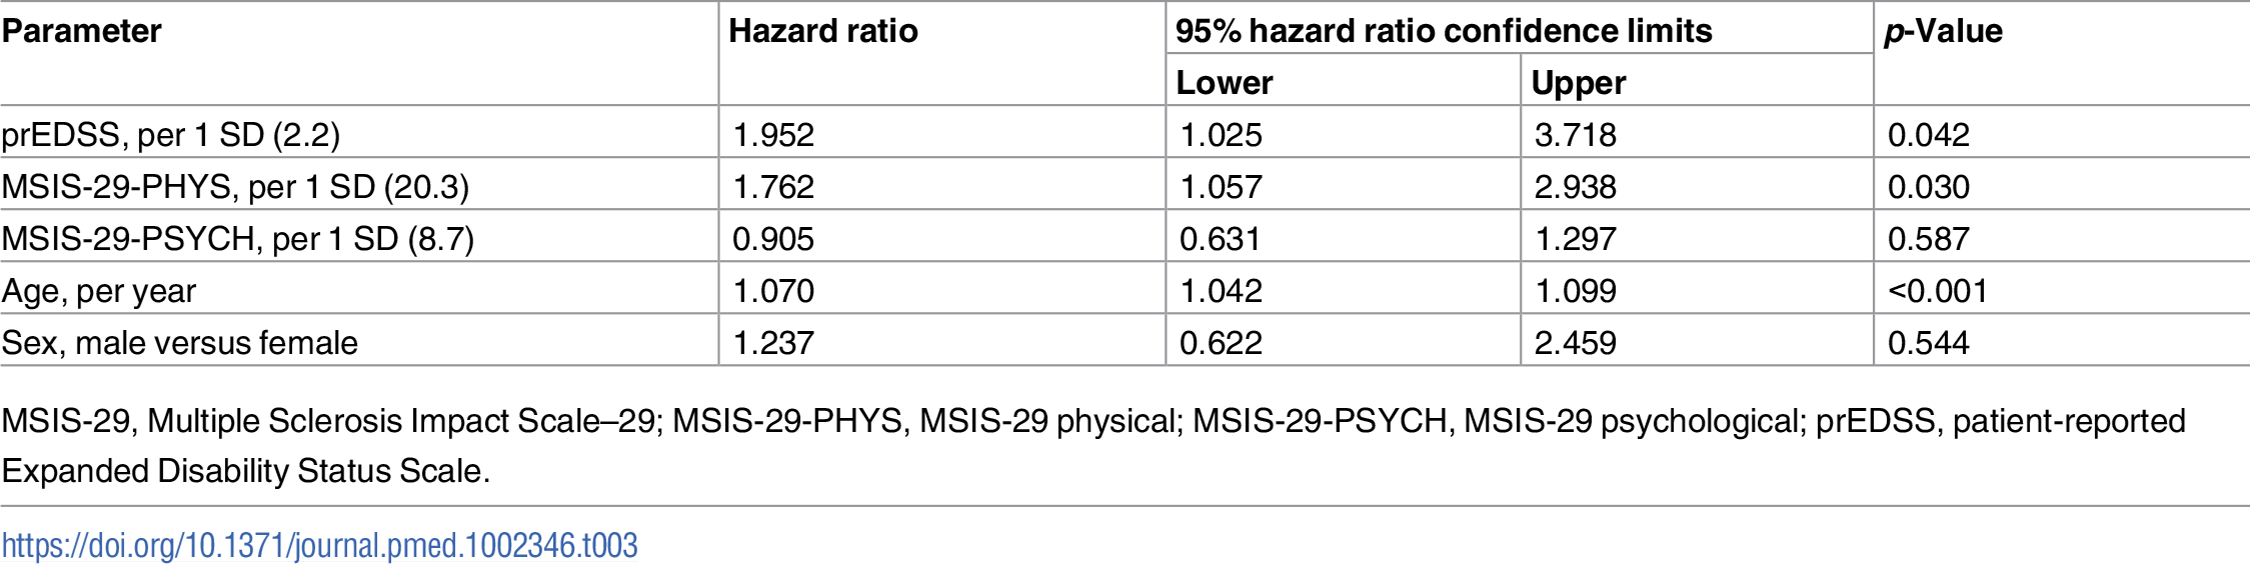 Reduced survival time (greater hazard ratio for death) was associated with older age, higher prEDSS score, and higher MSIS-29-PHYS score in the limited cohort with prEDSS score available (n = 625).